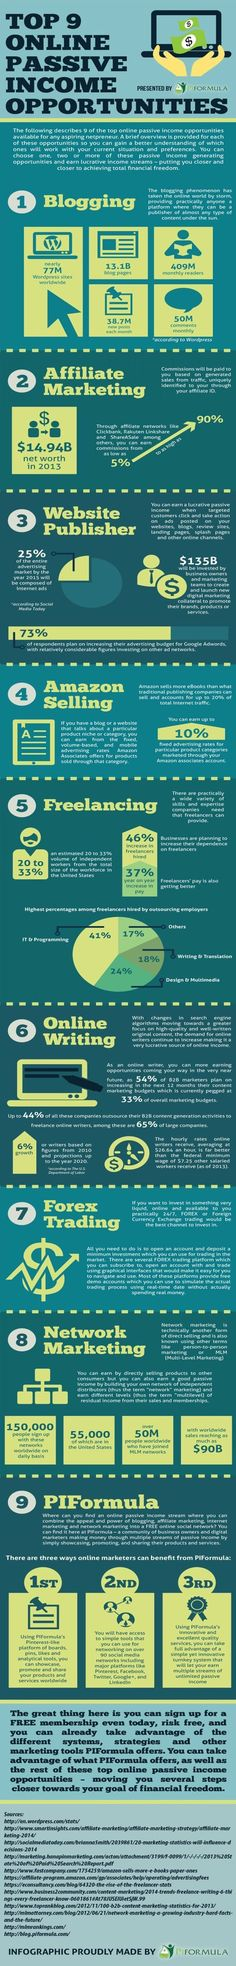 Top 9 Online Passive Income Opportunities Infographic Ways to make money, make extra money, make more money